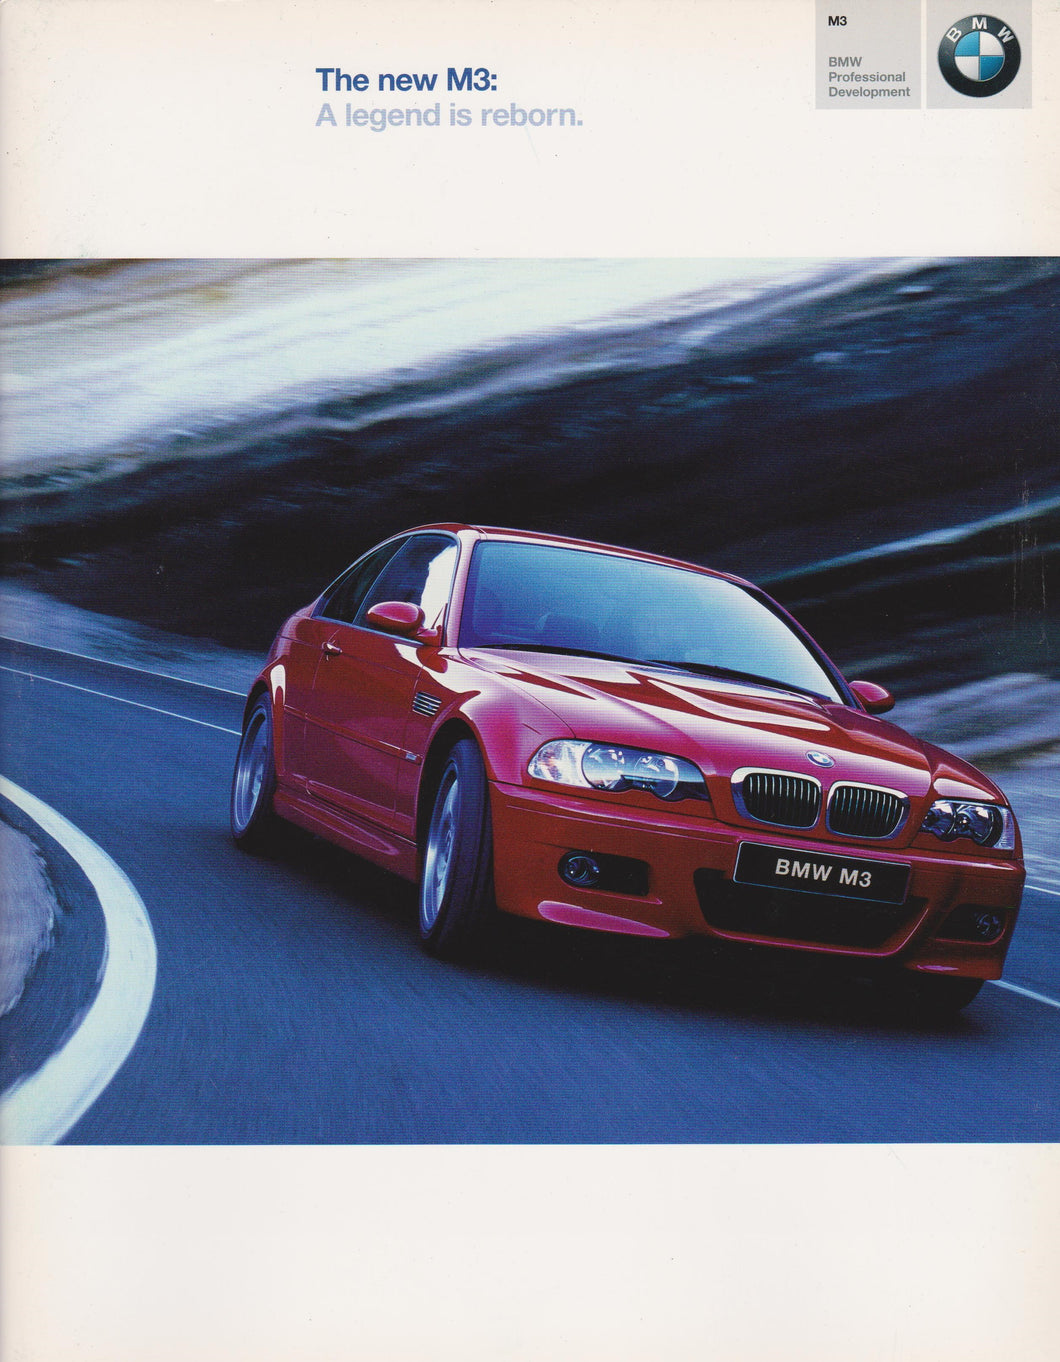 Brochure - The New M3: A legend is reborn - 2001 E46 Brochure